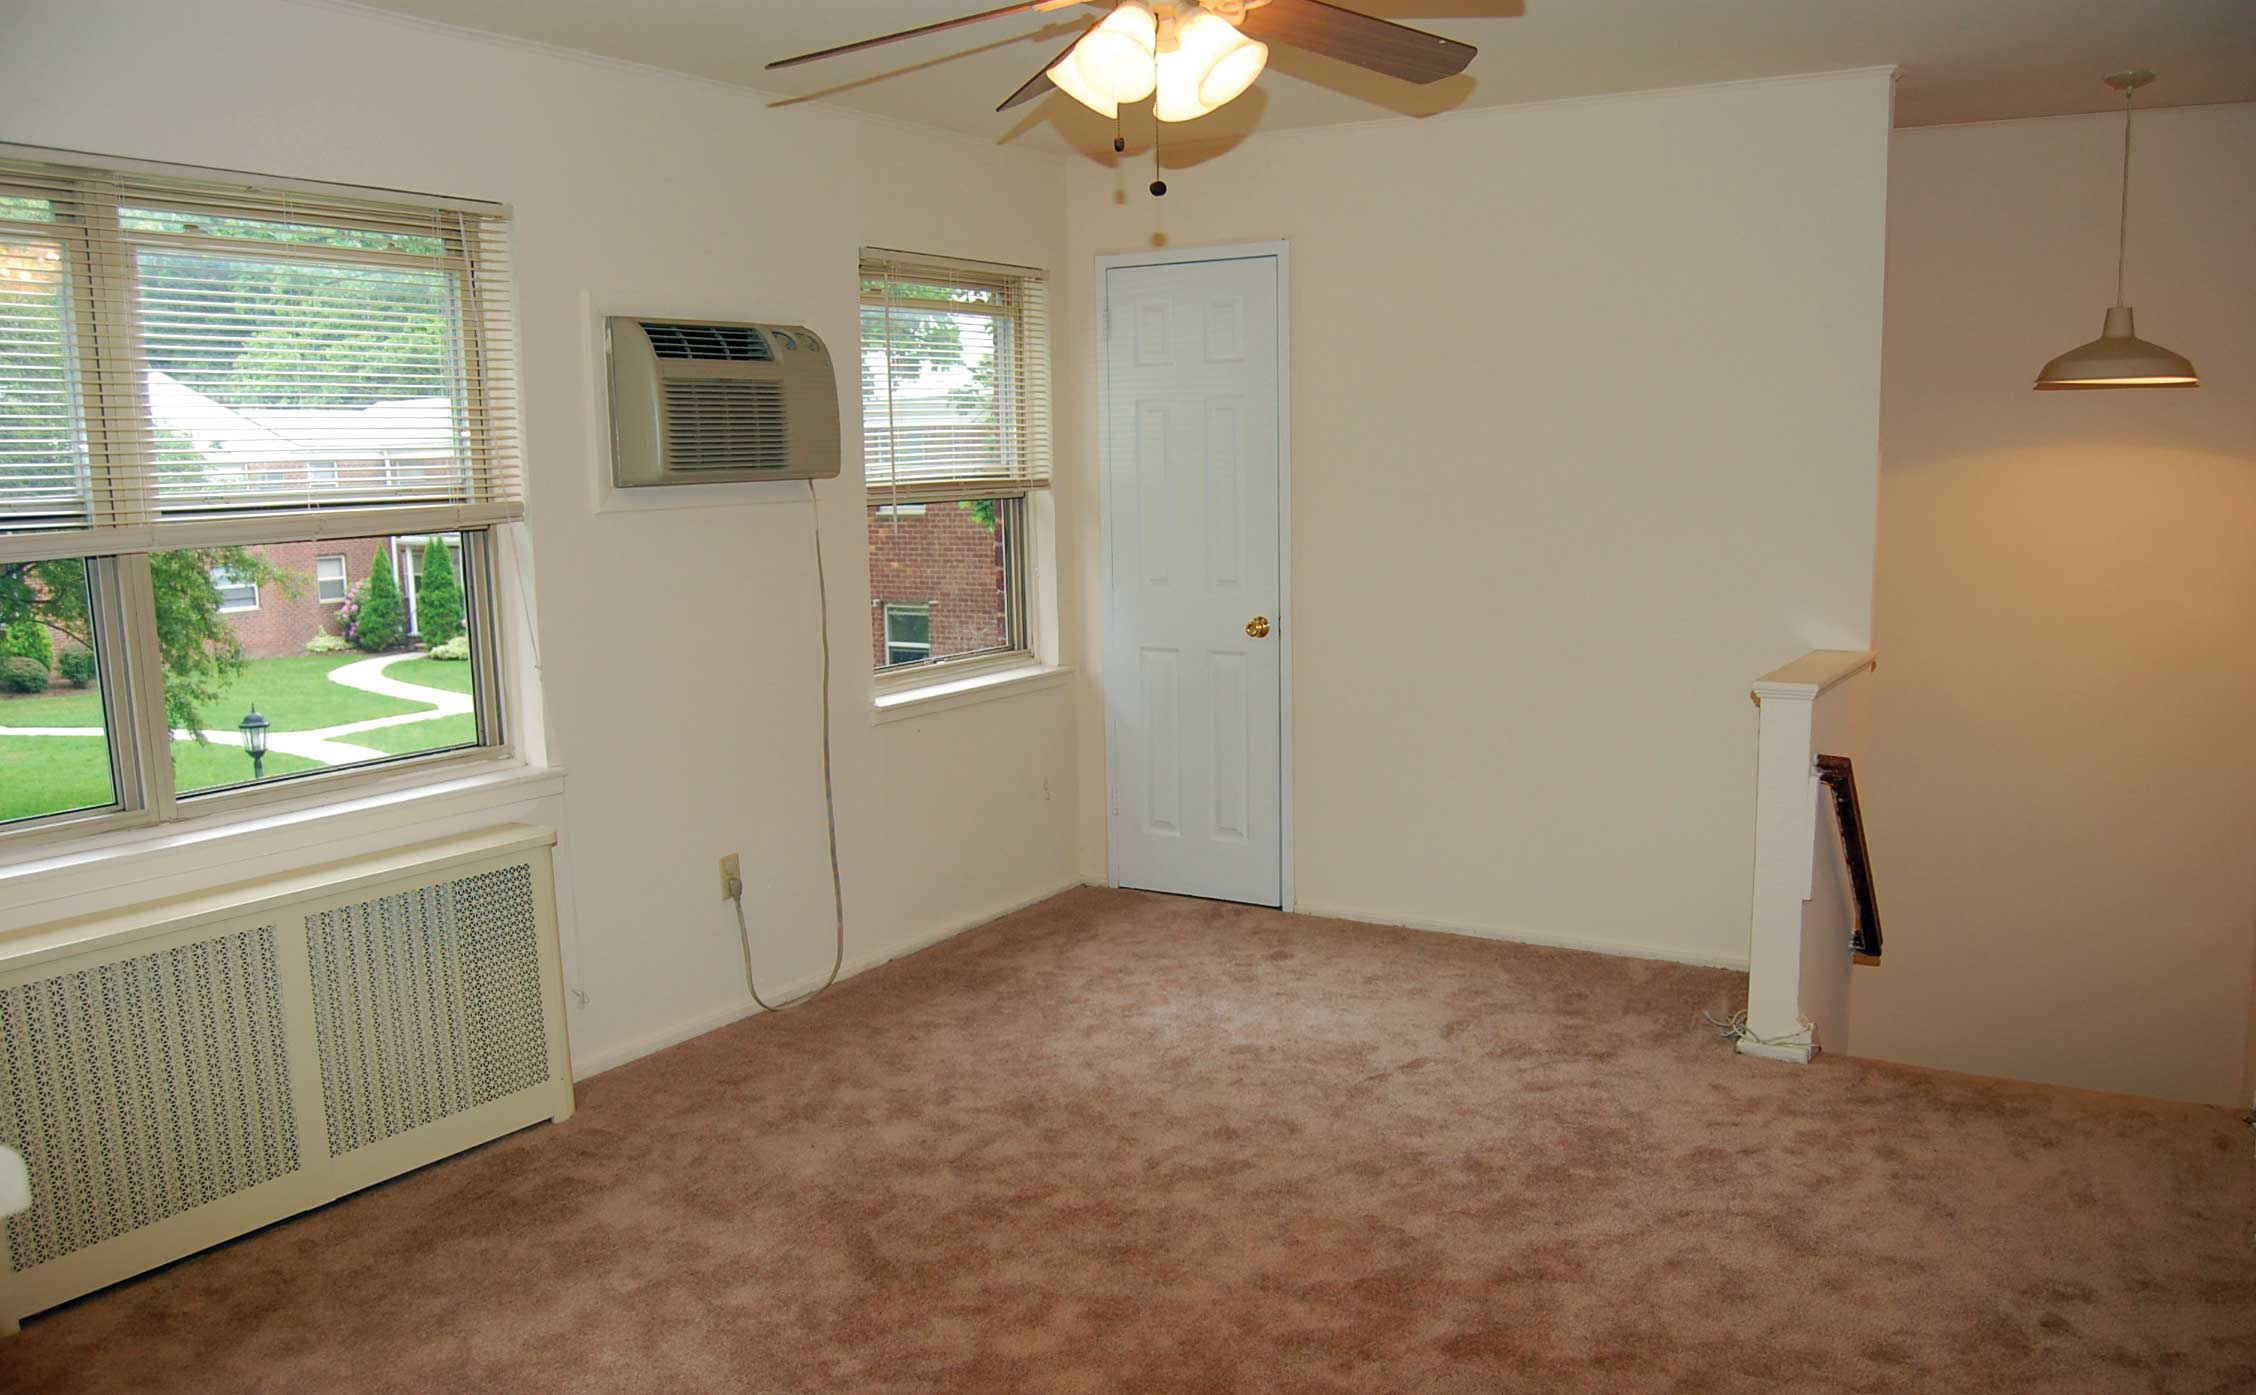 A living room layout at Lakeview Apartments